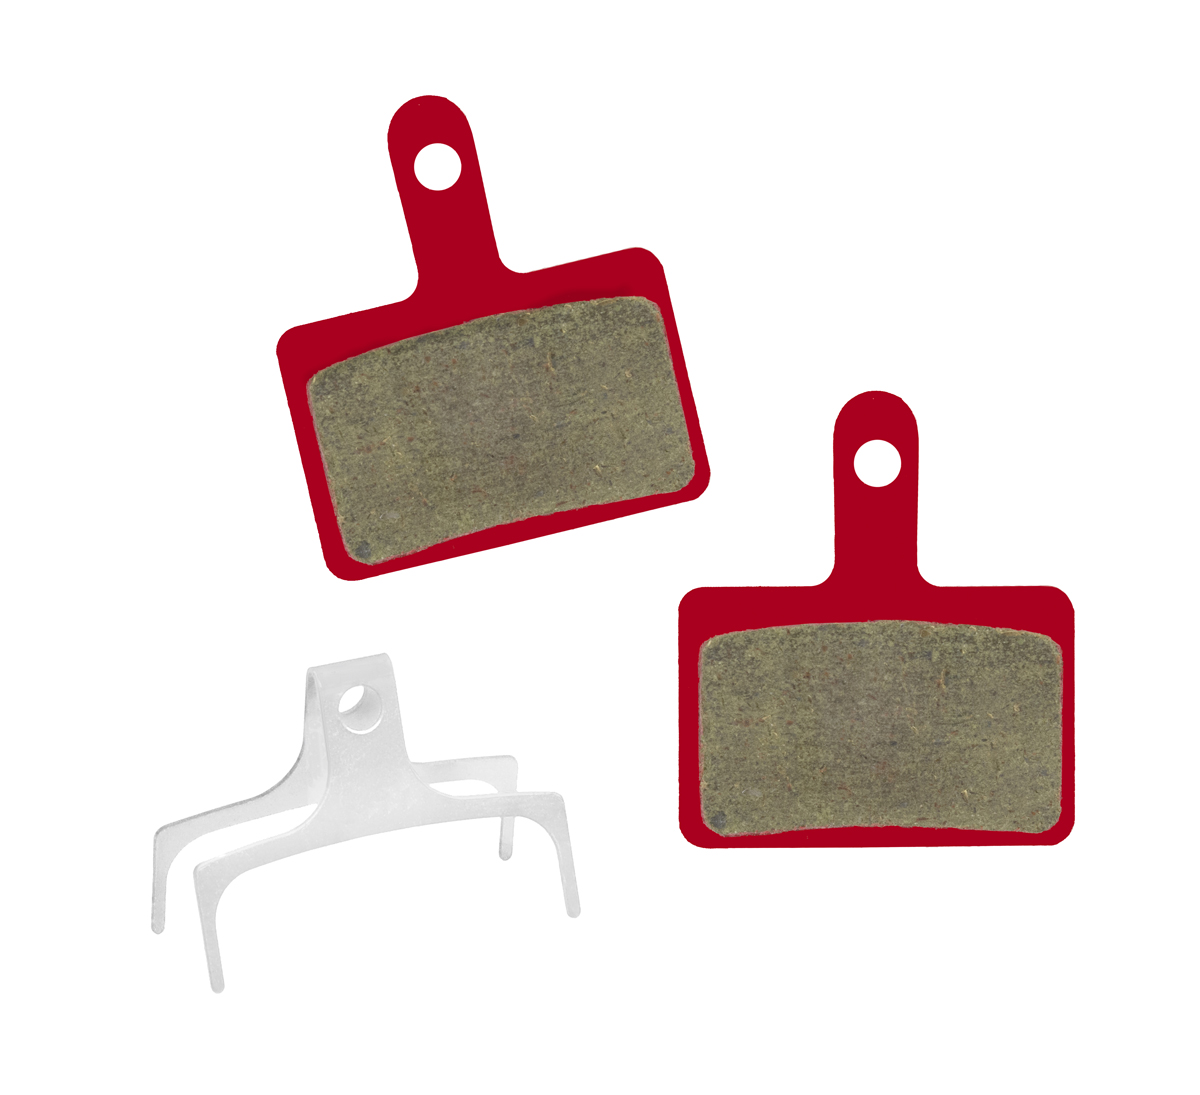 Trivio Organic Brake Pad for Shimano Deore Disc Brake - Red